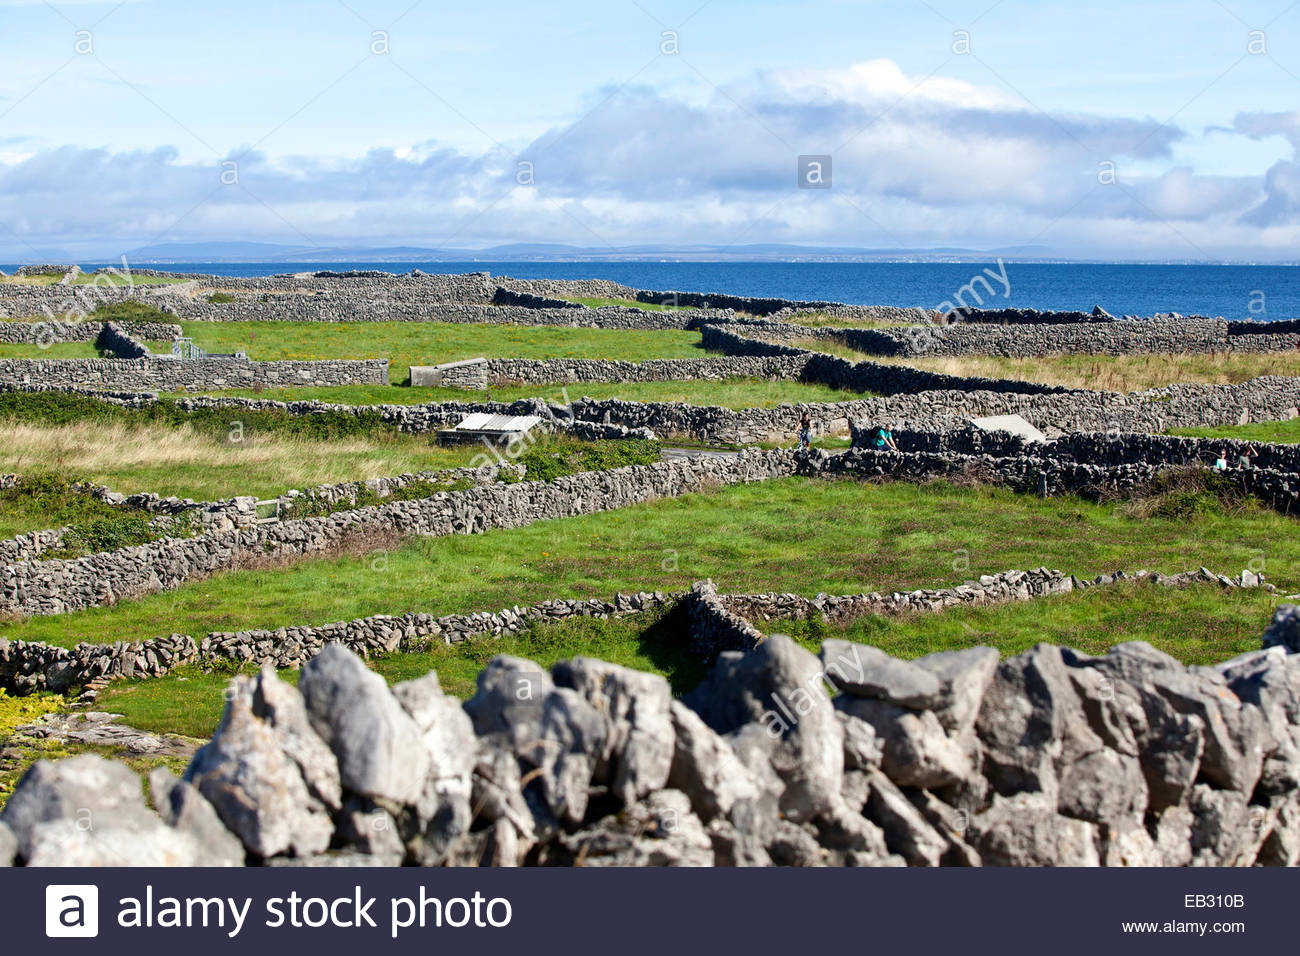 Stonewall architecture around Inis Oirr Island. - Stock Image